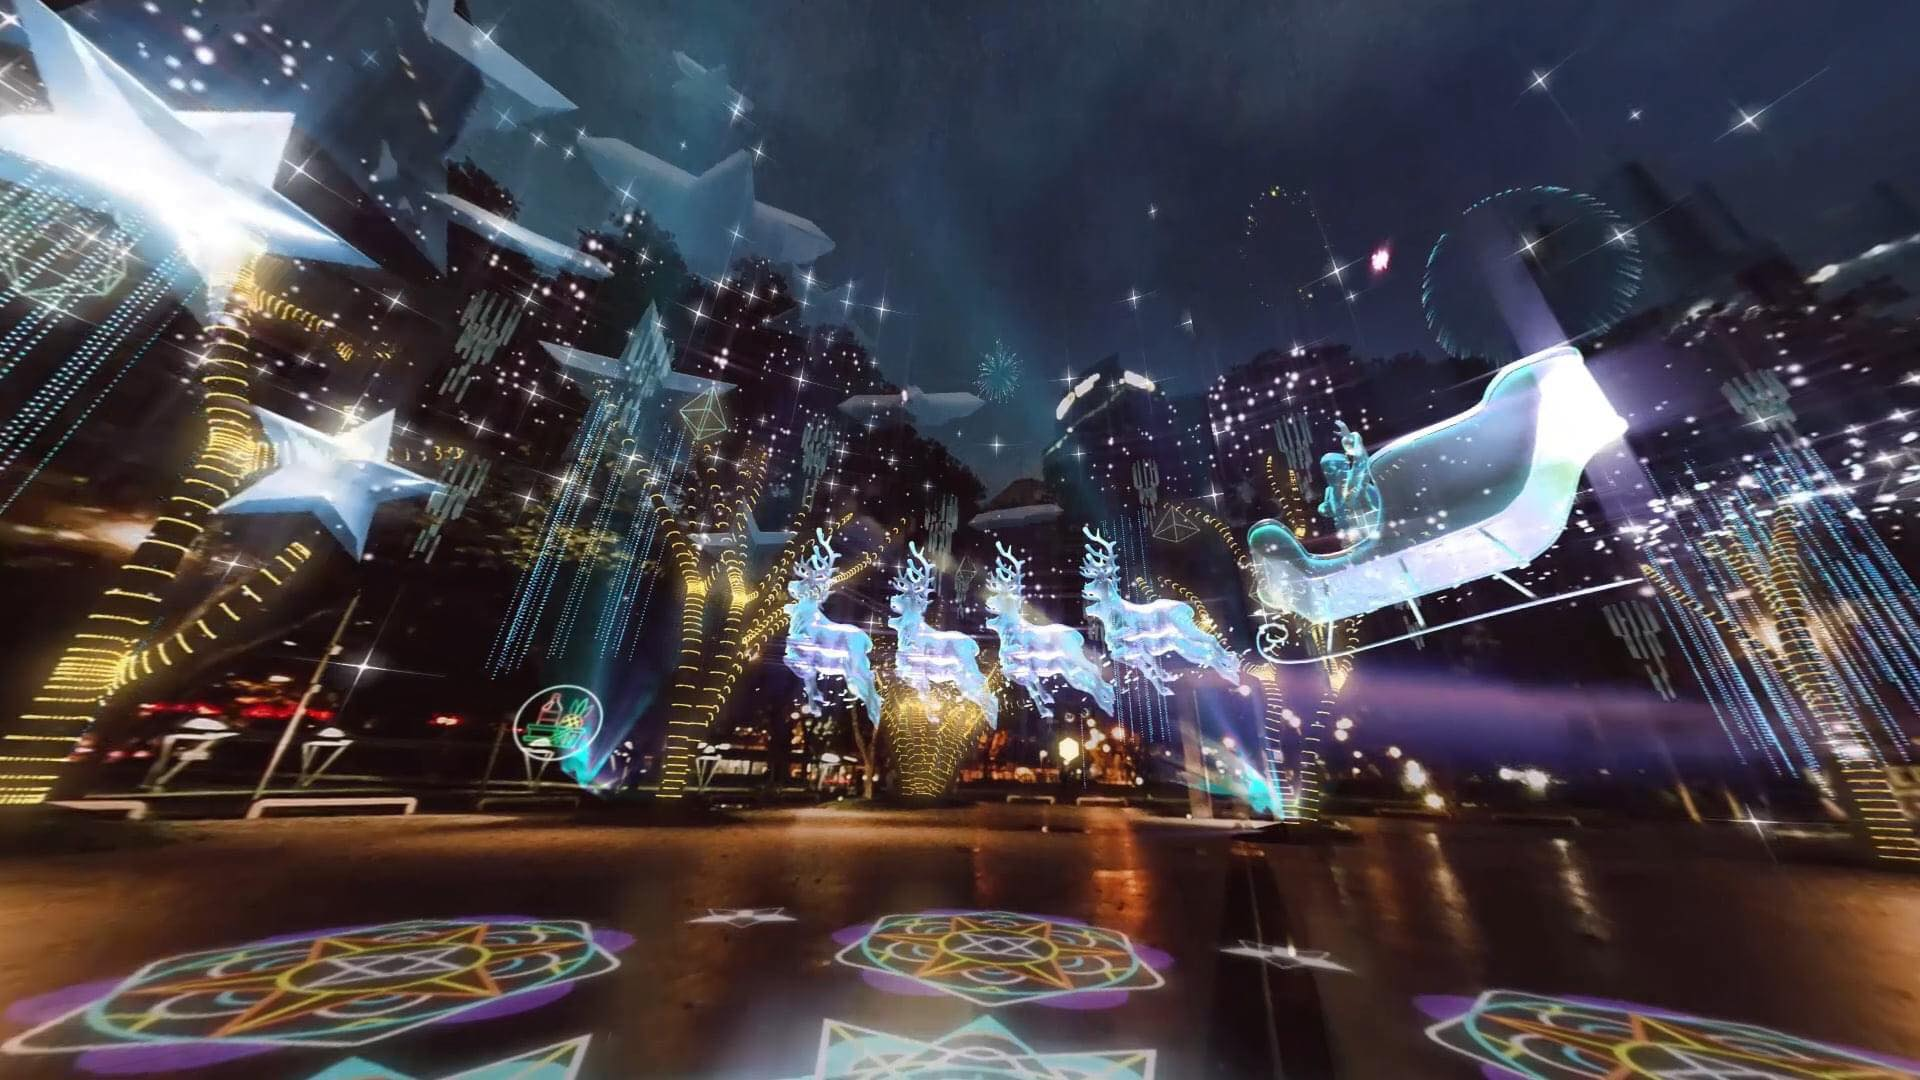 Ayala Land Sparks Up Hope for the Holidays with the Country's First Interactive Digital Lights and Sound Show